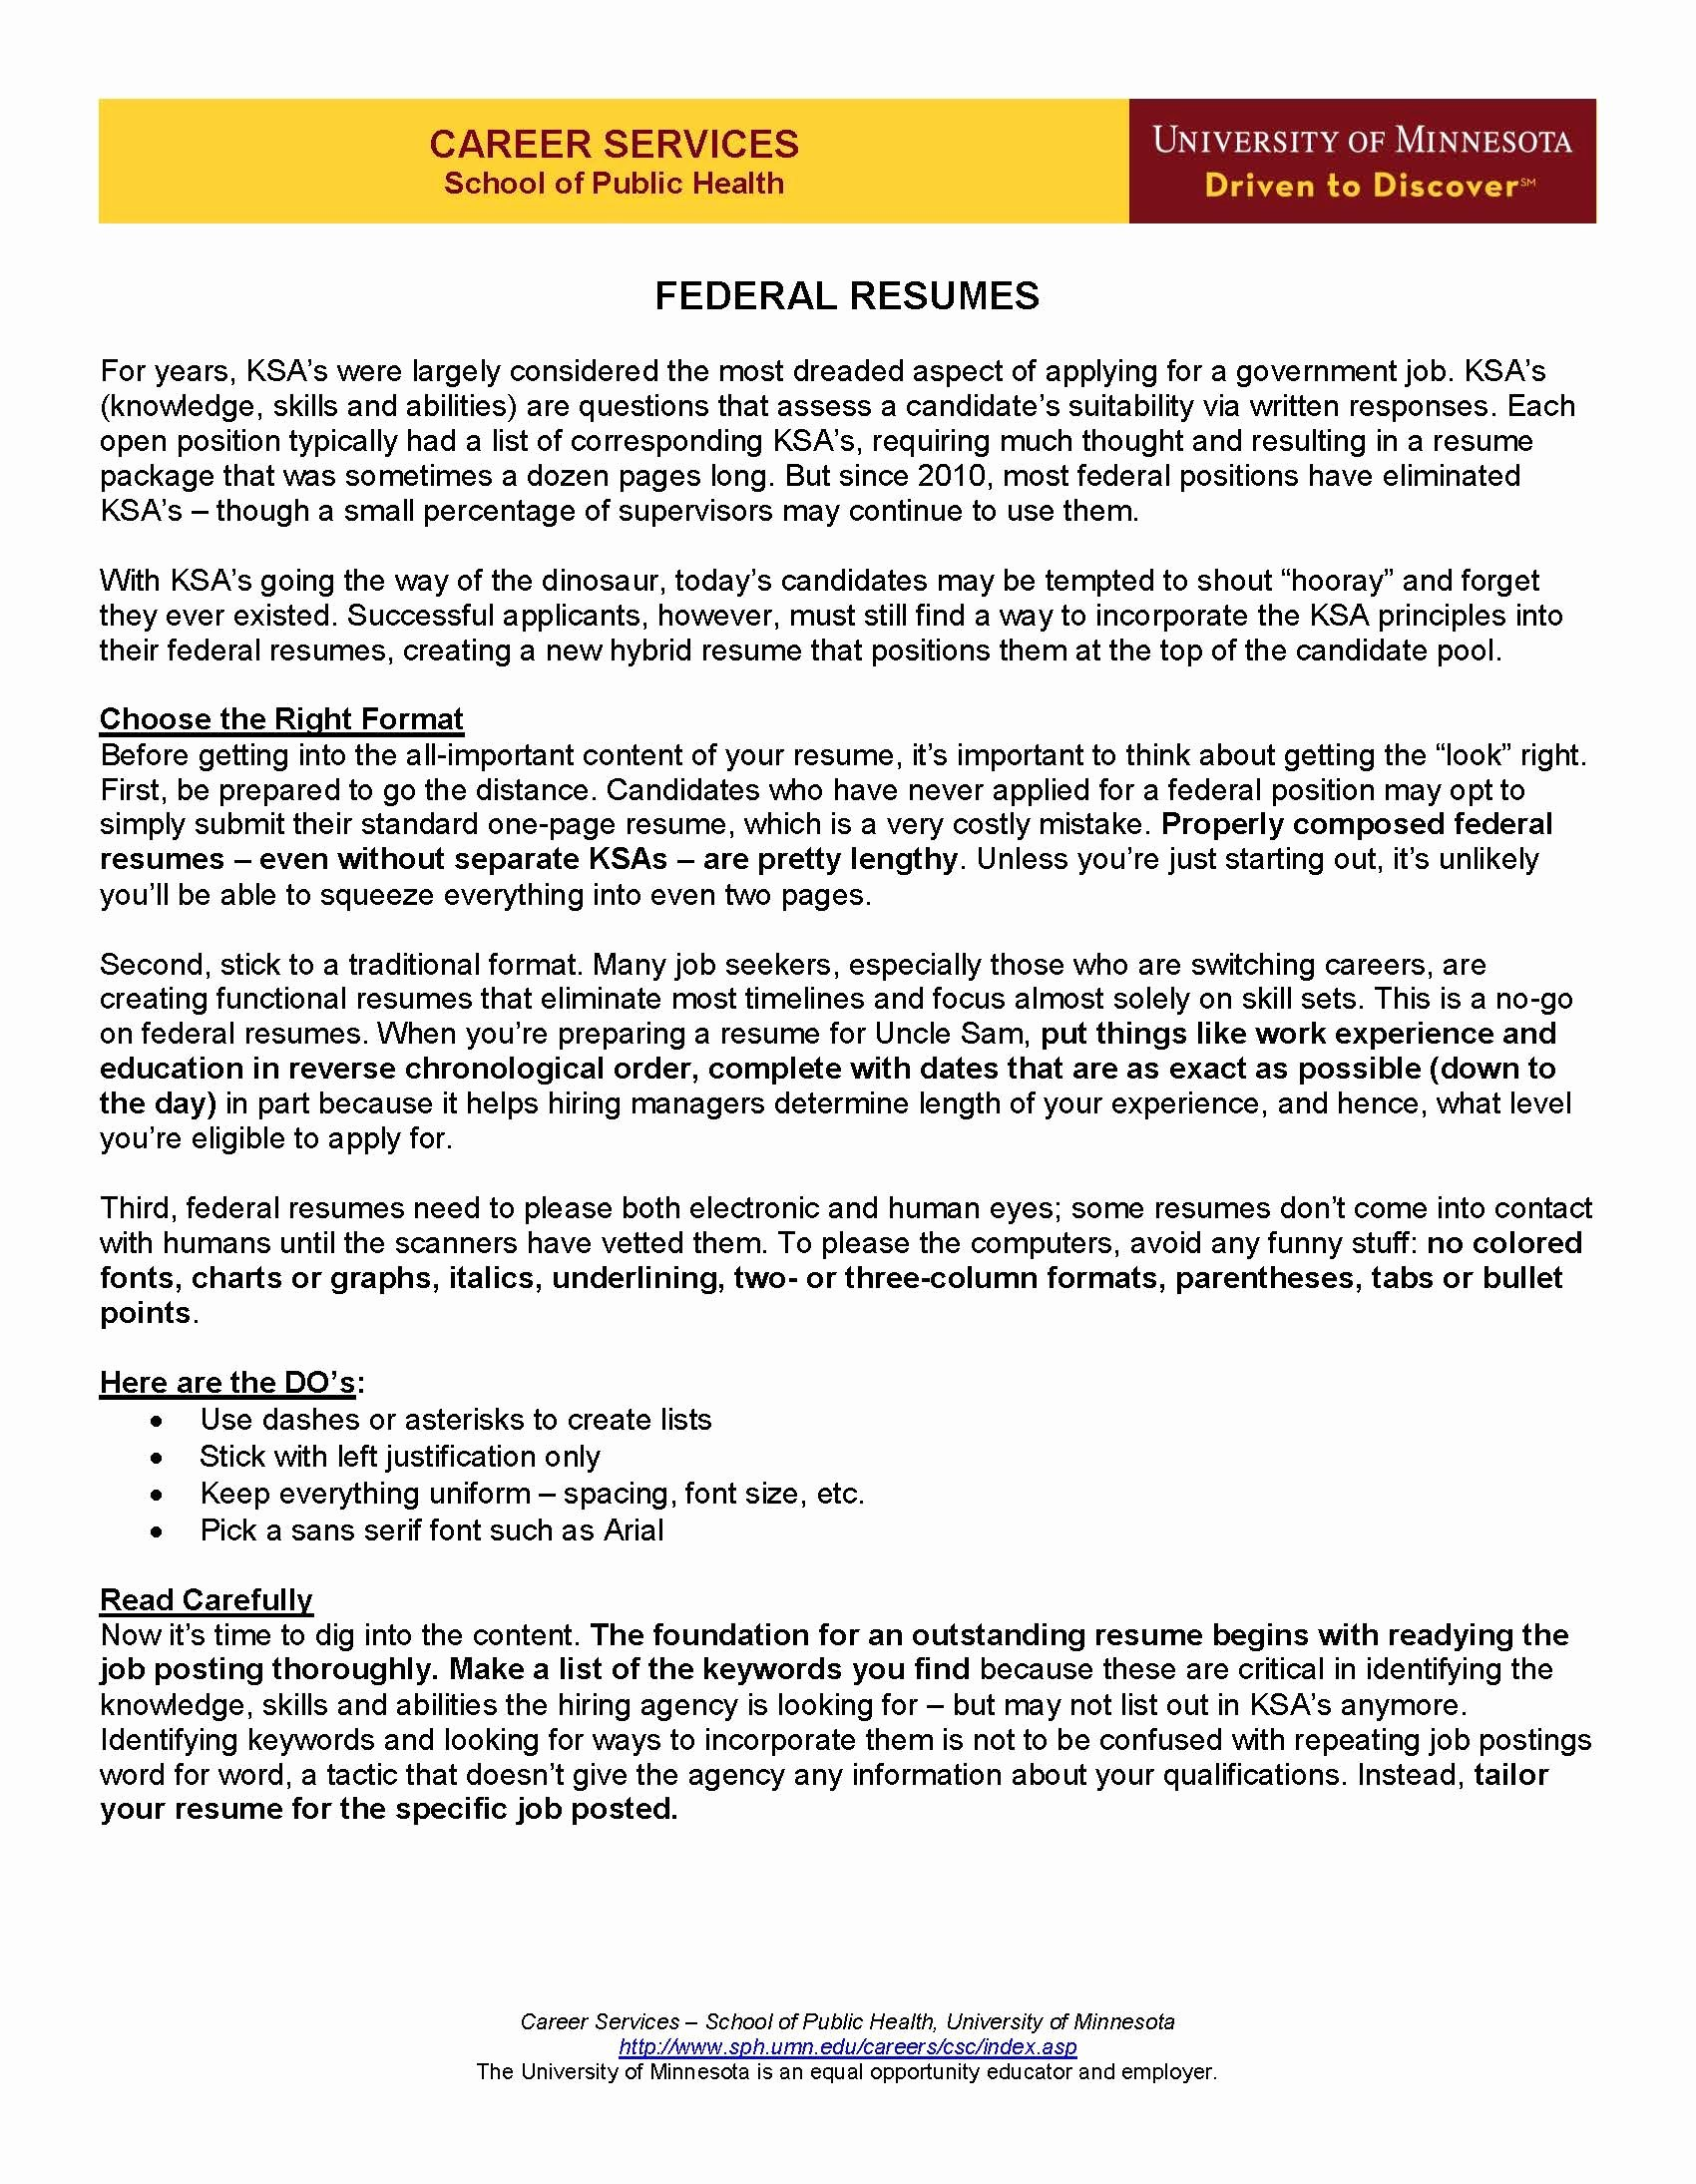 Sample Resume for Federal Jobs Beautiful Federal Resumes Page 1 Resume Guide